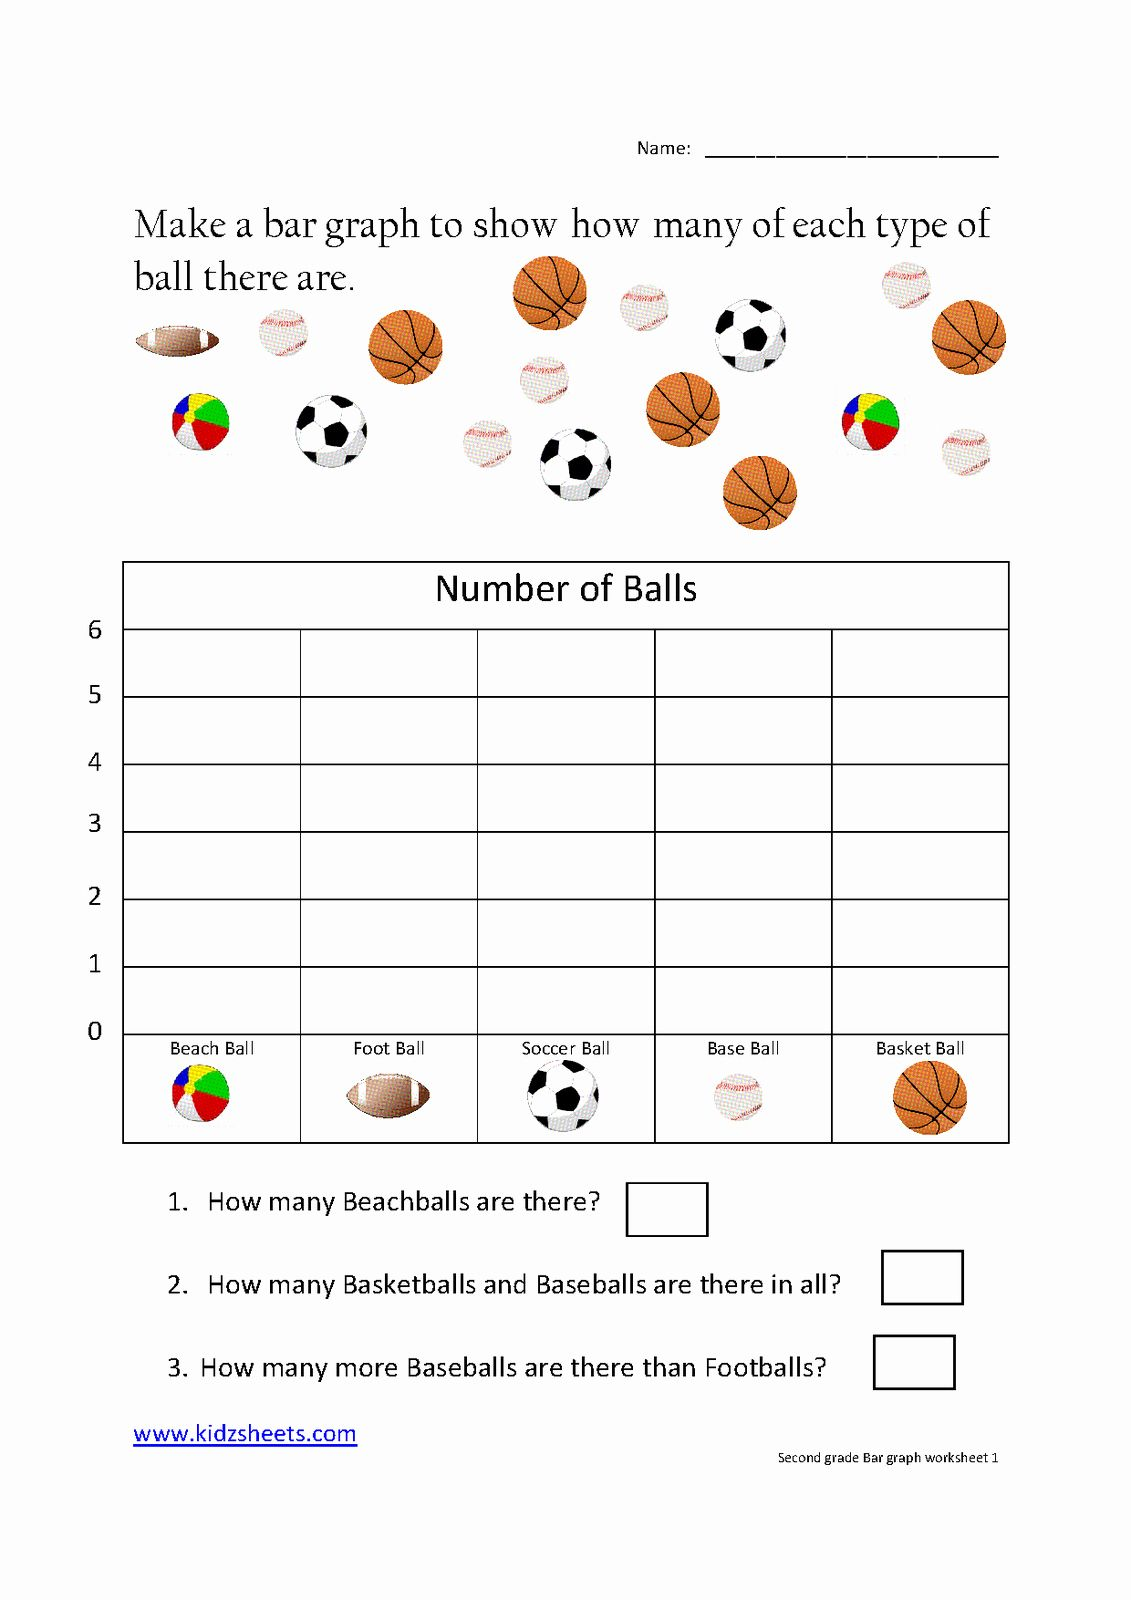 small resolution of Free Bar Graph Worksheets Unique Kidz Worksheets Second Grade Bar Graph  Worksheet1   Graphing worksheets